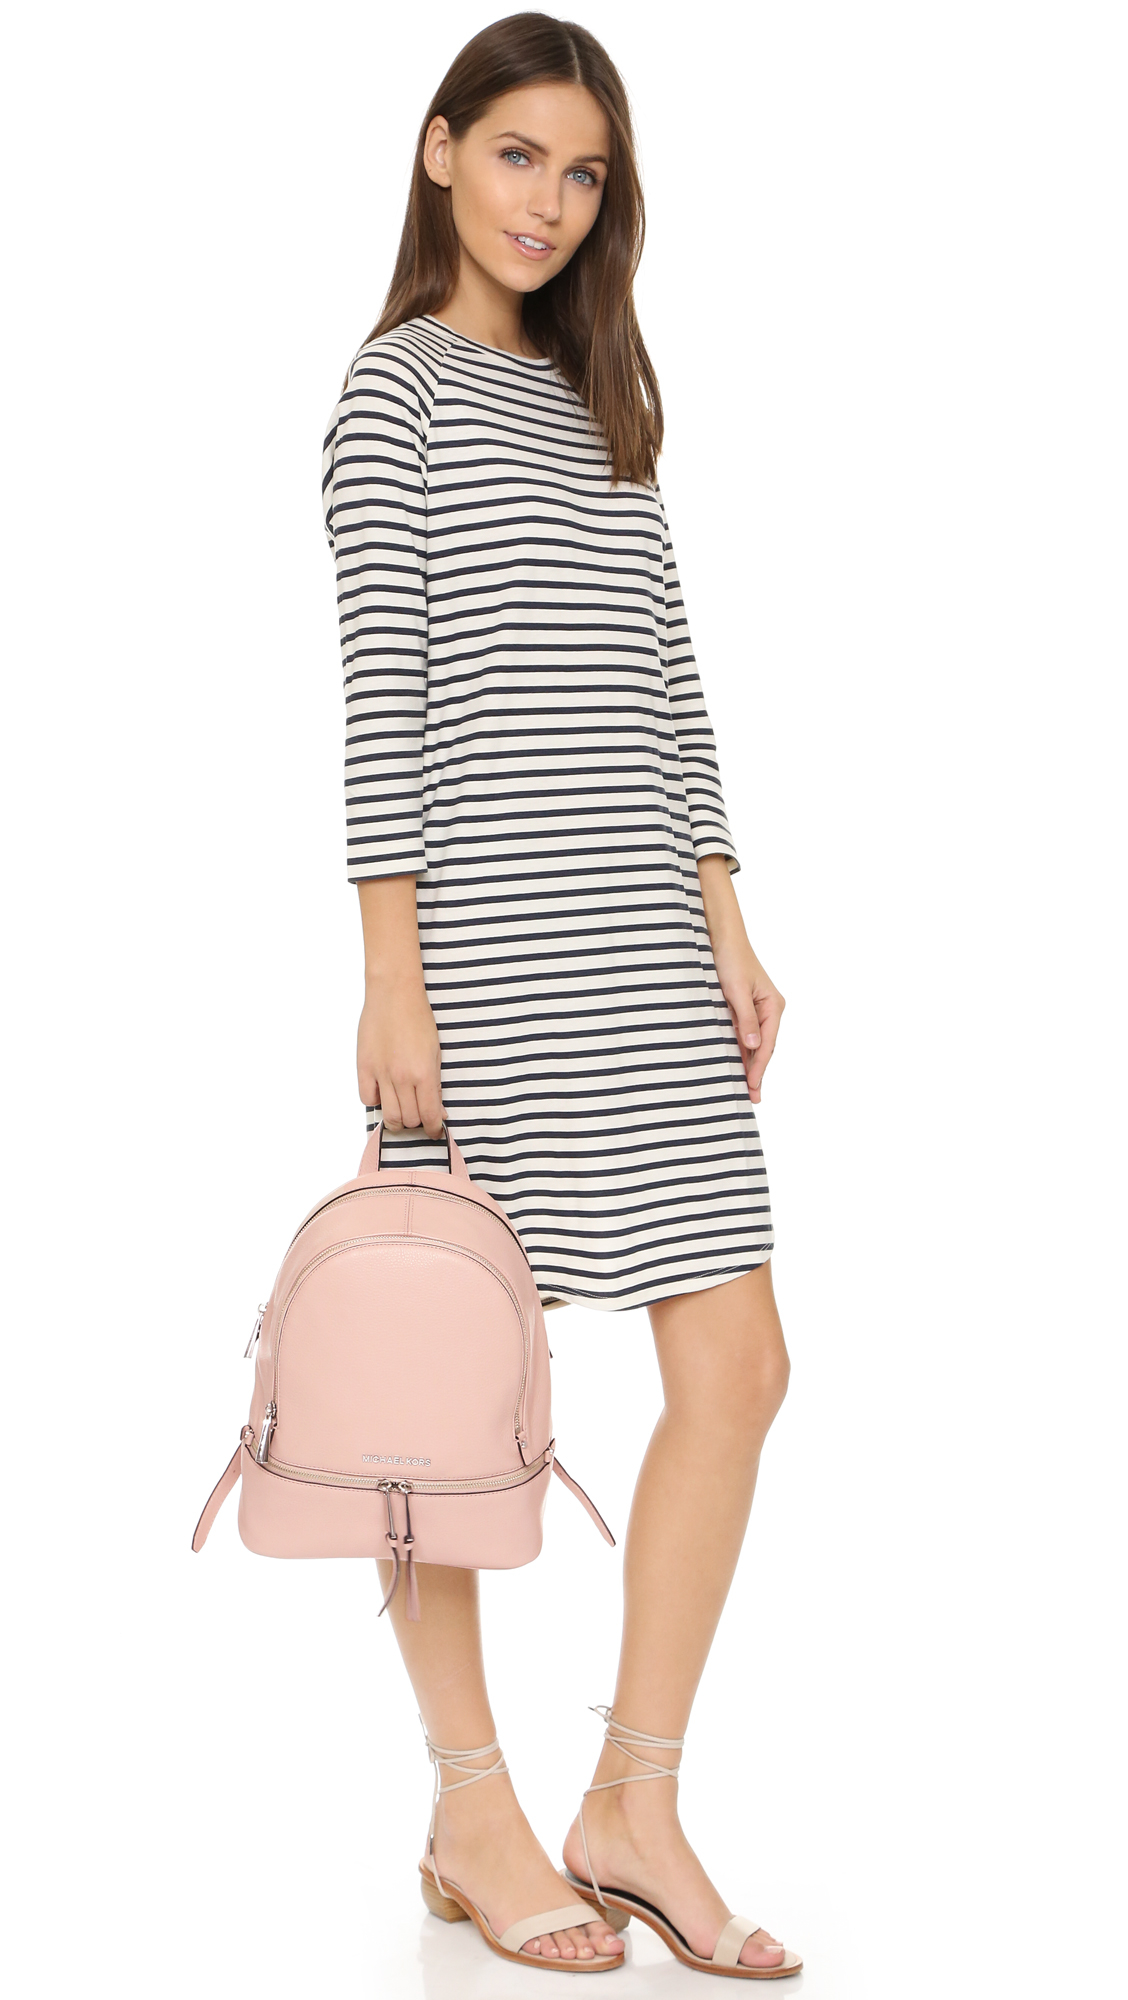 7a6cffbe7642 MICHAEL Michael Kors Rhea Small Backpack - Ballet in Pink - Lyst